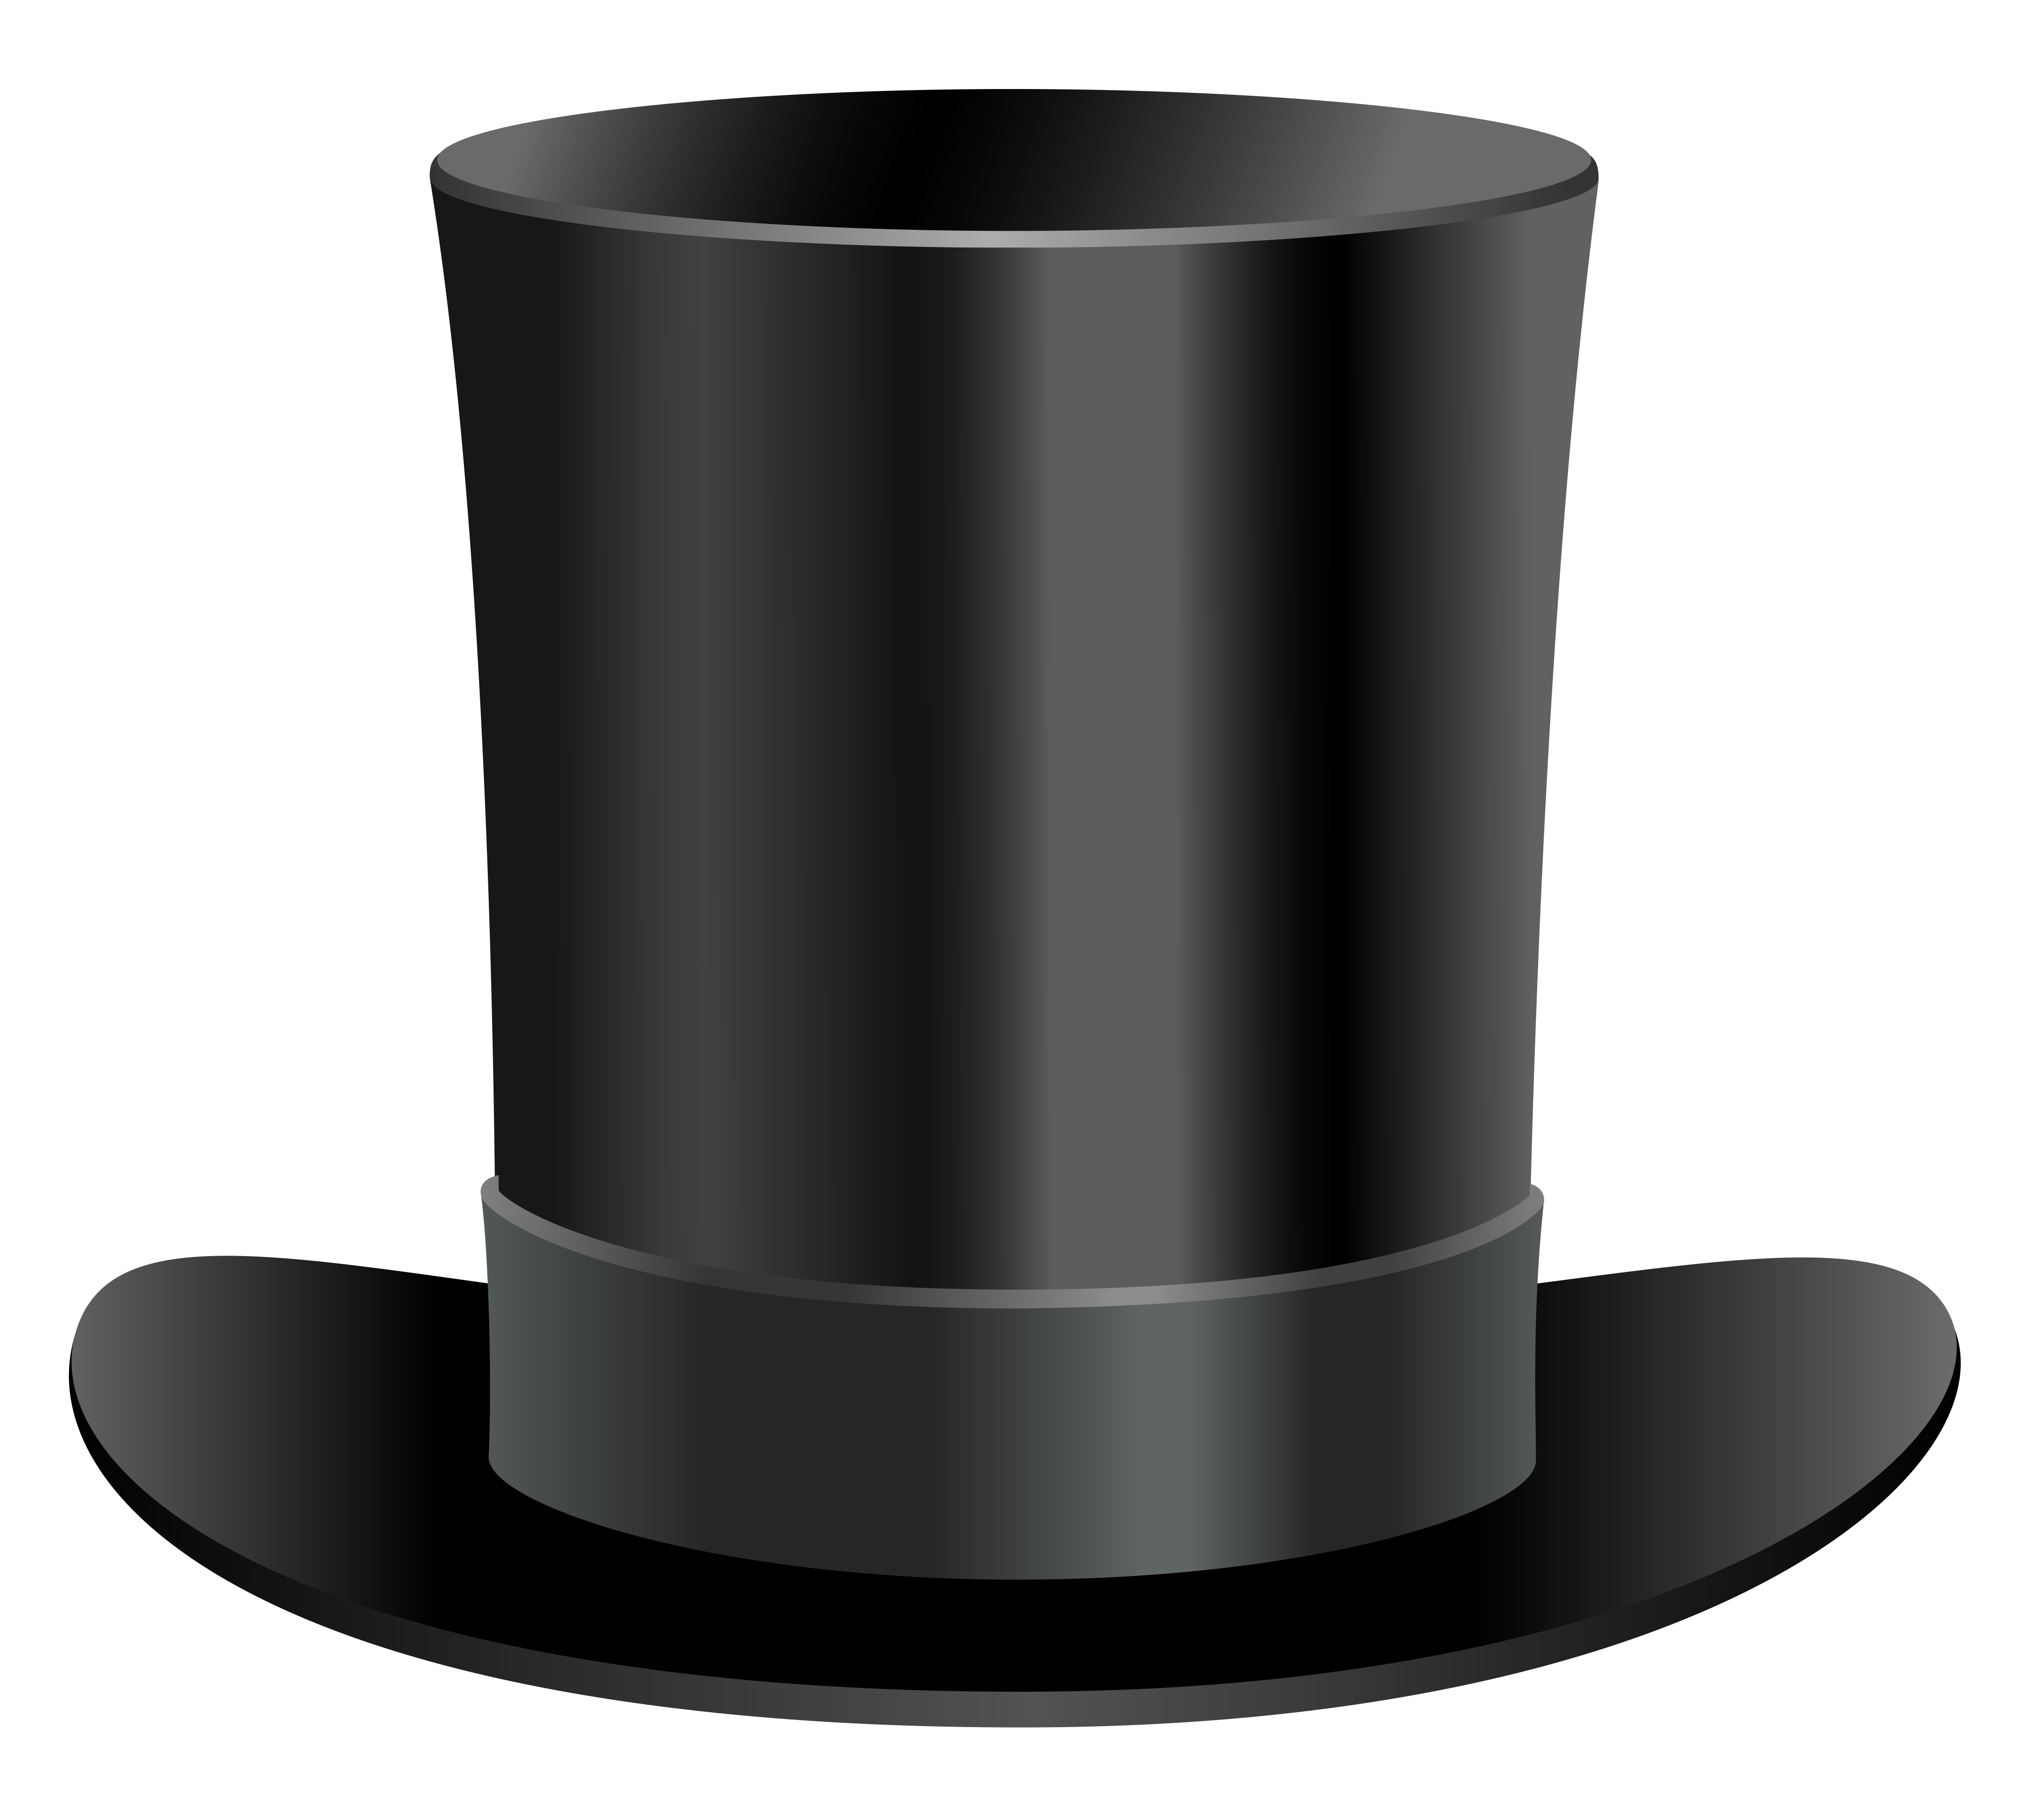 United States of America Top hat Clip art.